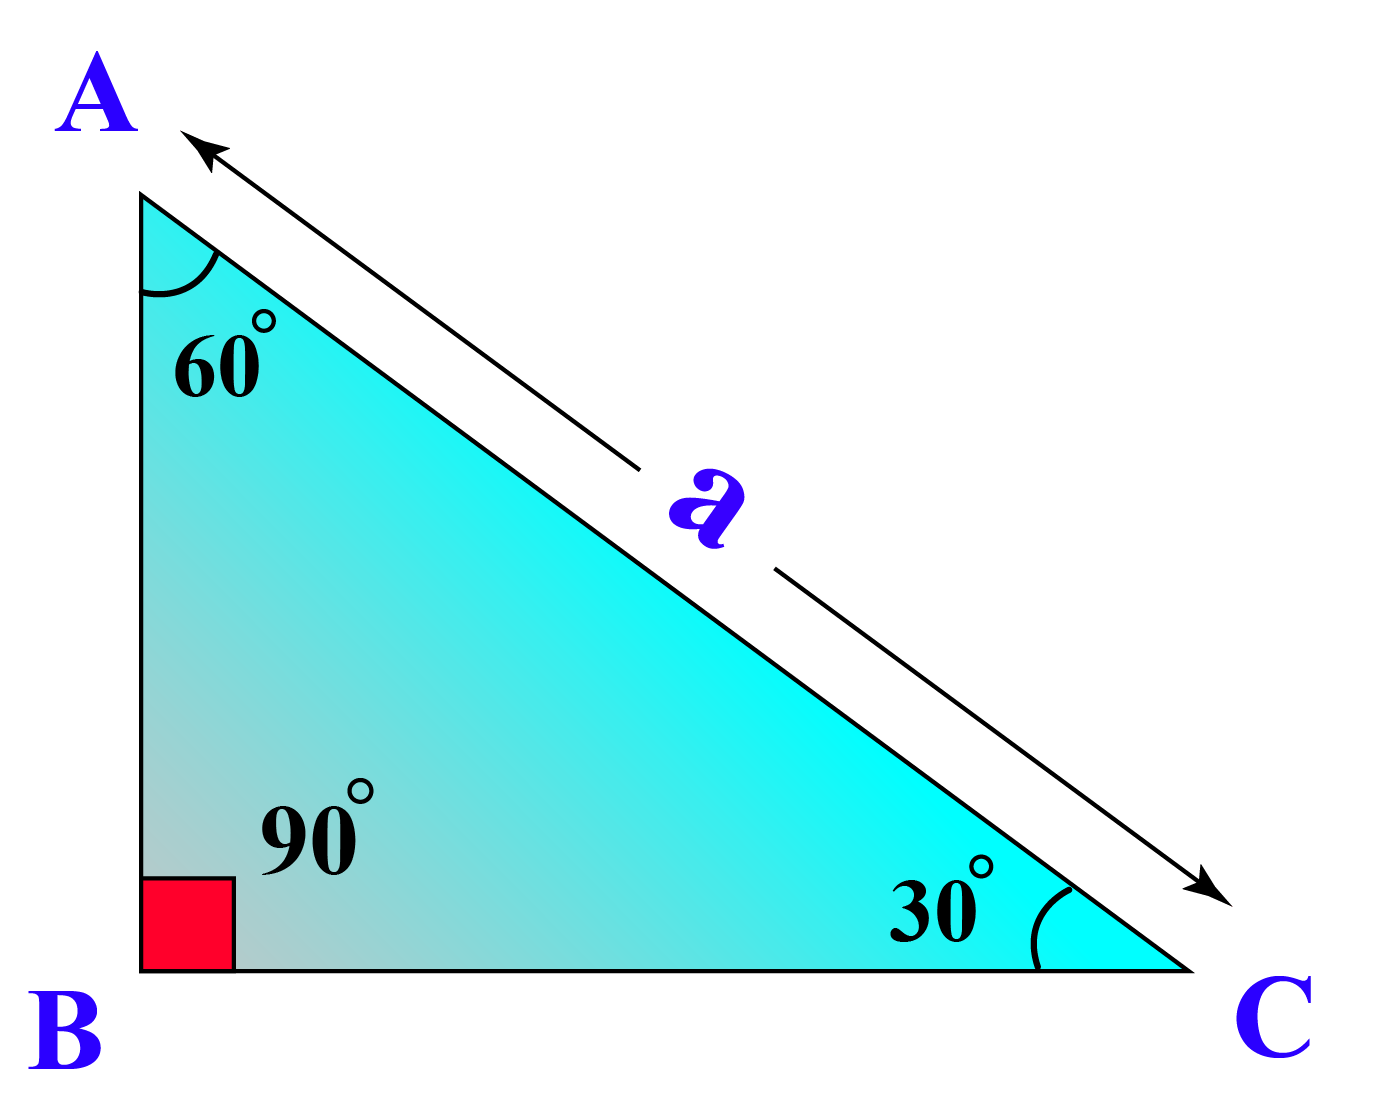 hypotenuse of a 30 60 90 triangle